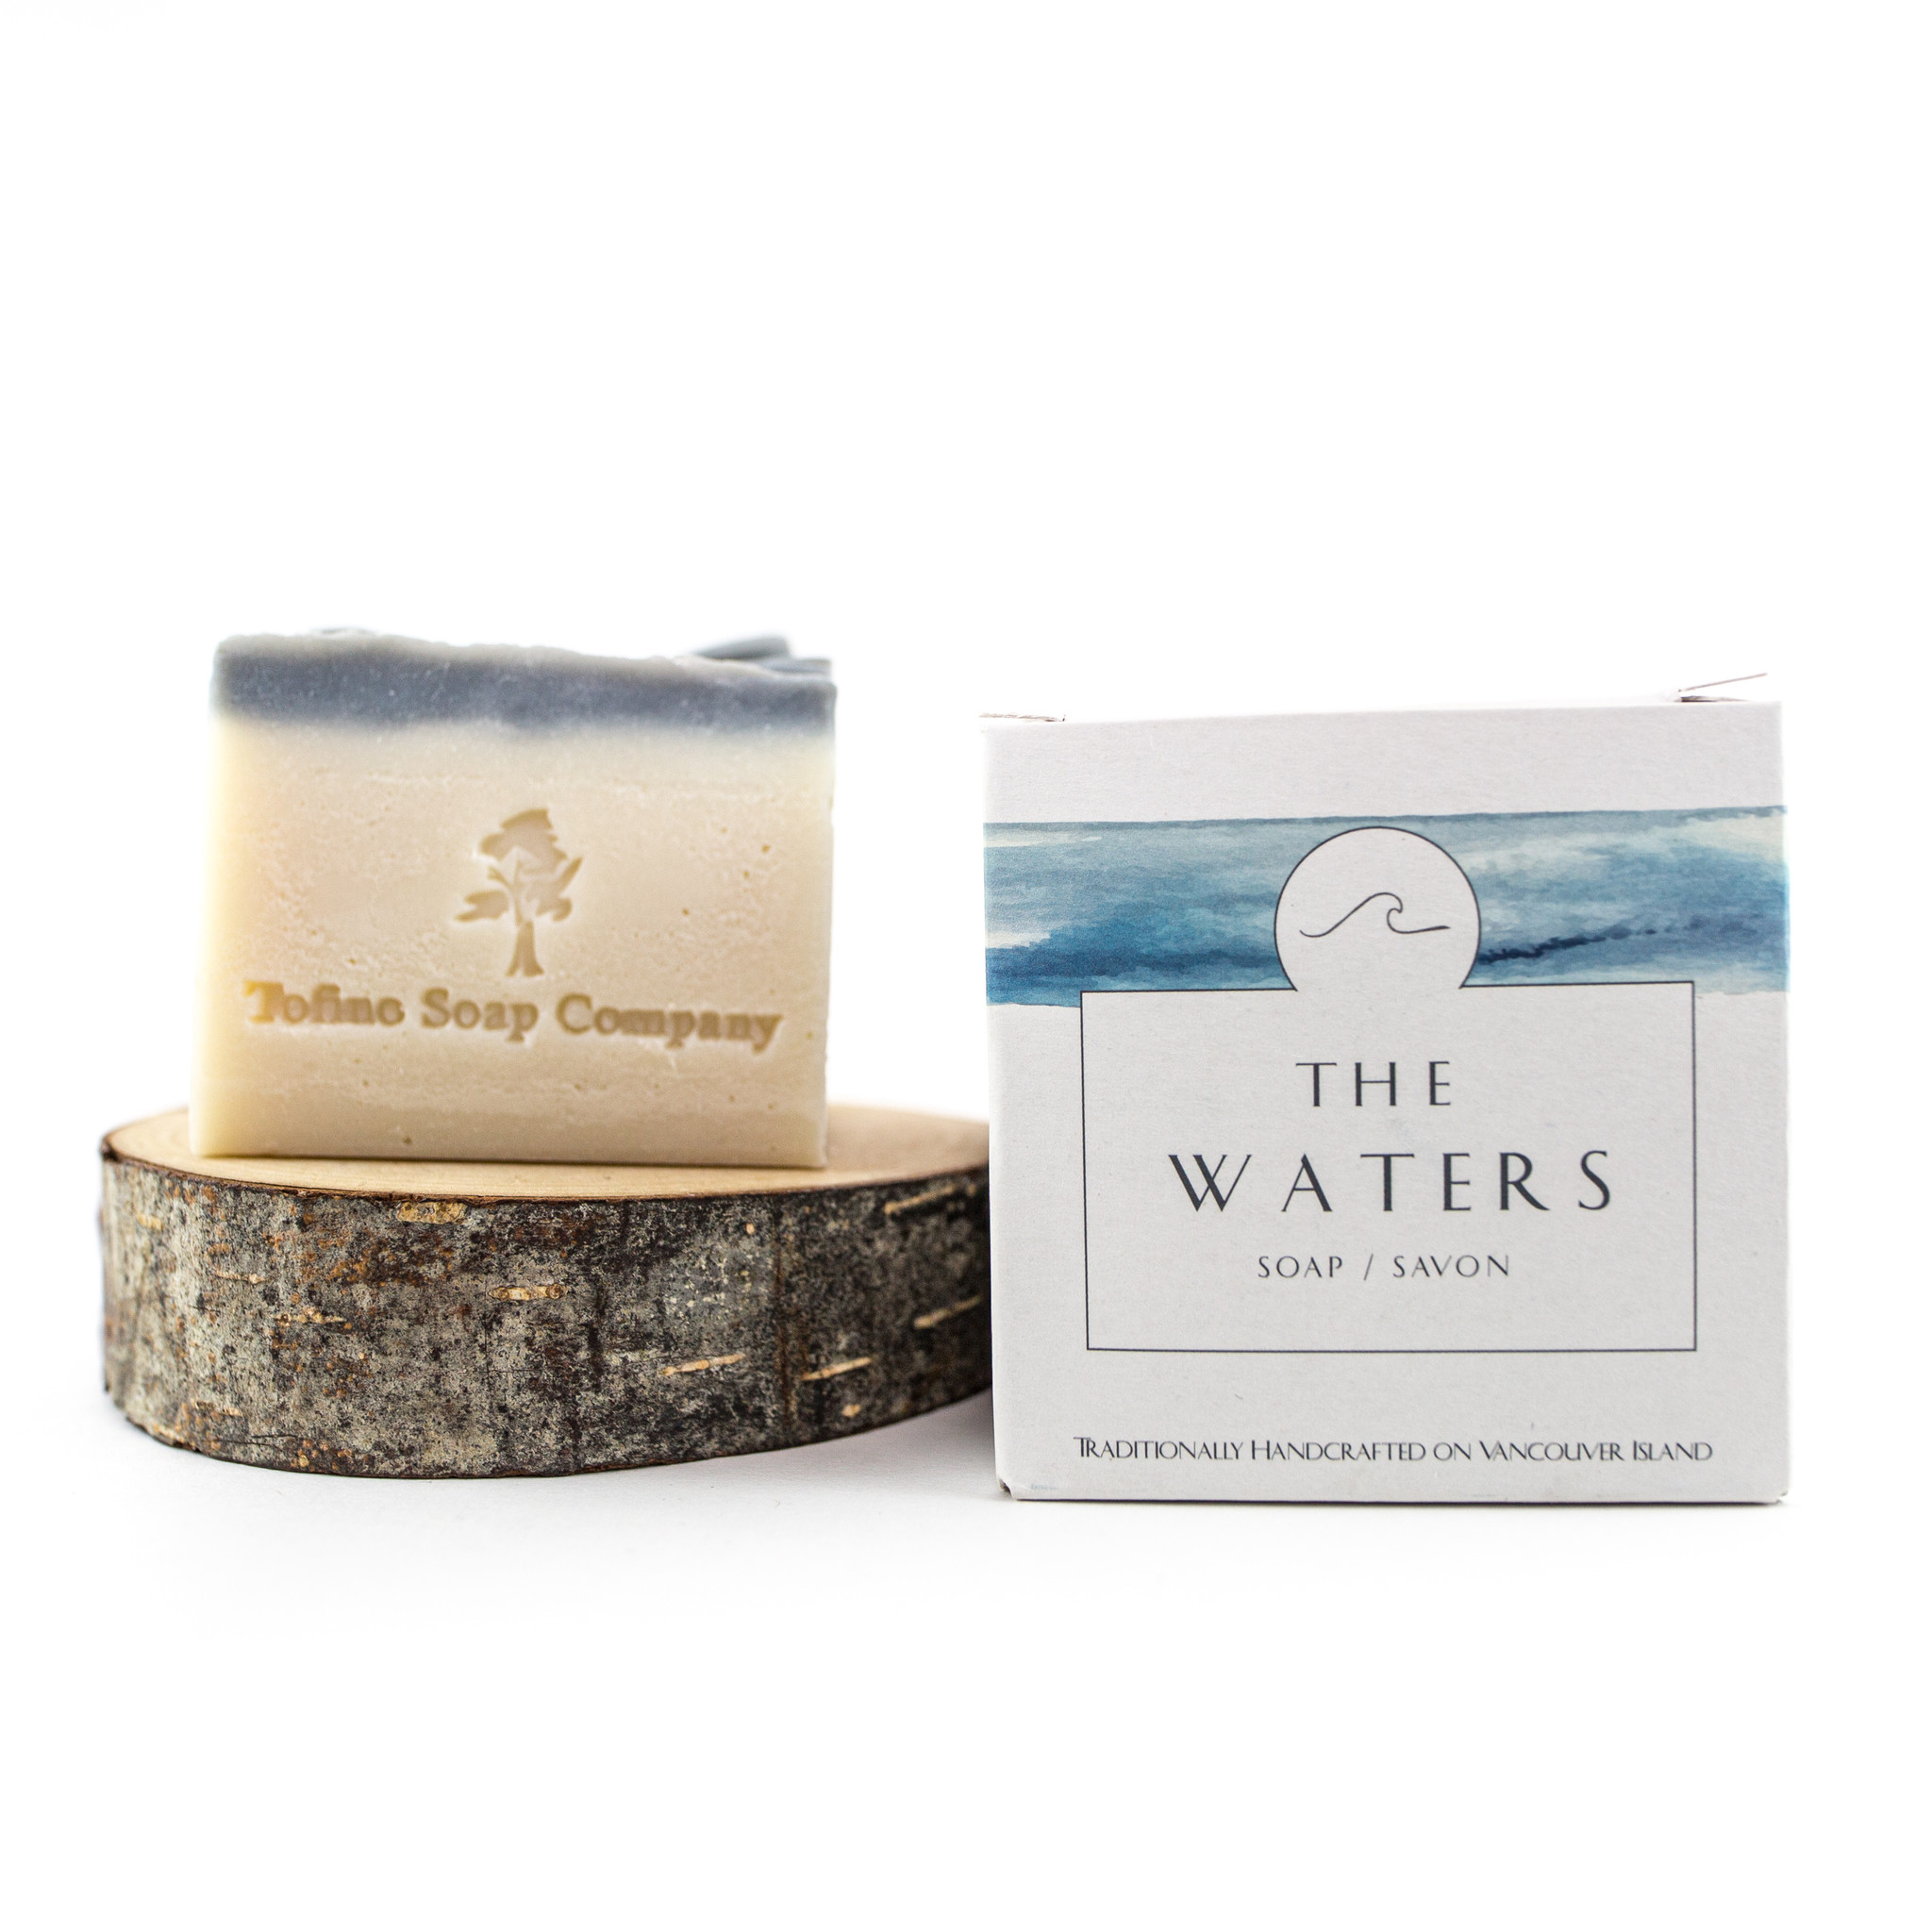 The Waters Soap